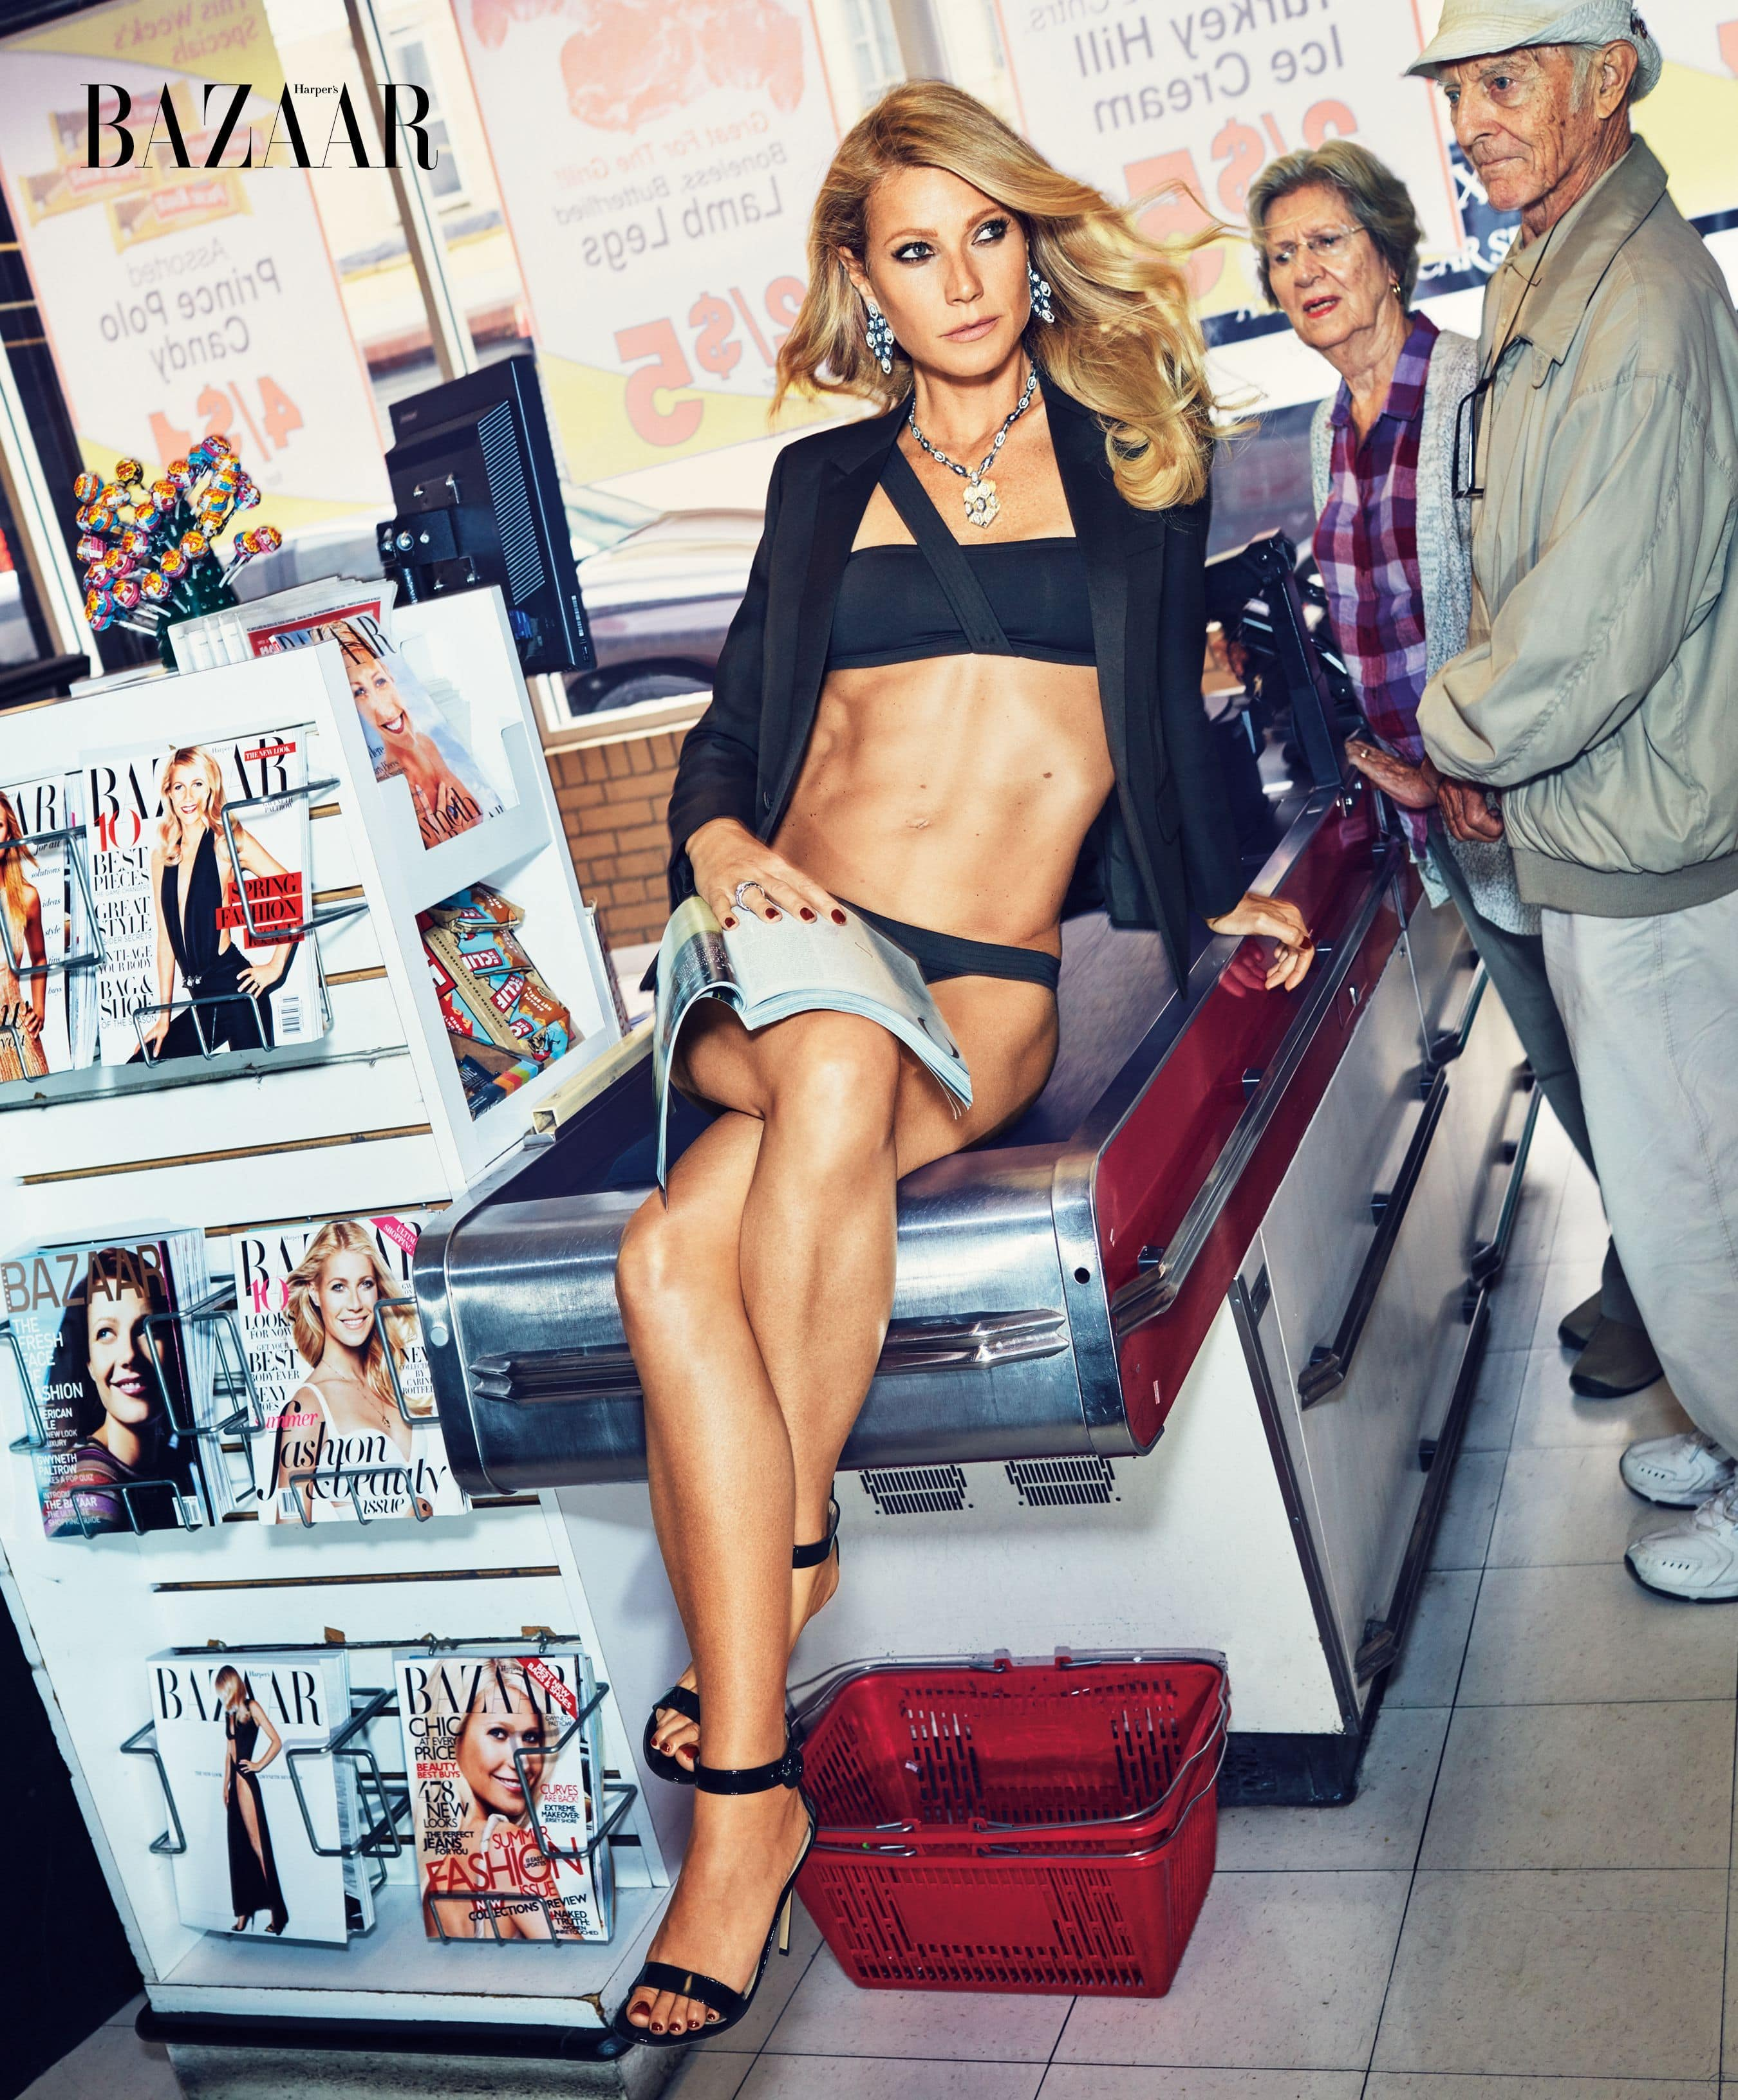 All bare lohan gwyneth paltrow legs excellent and